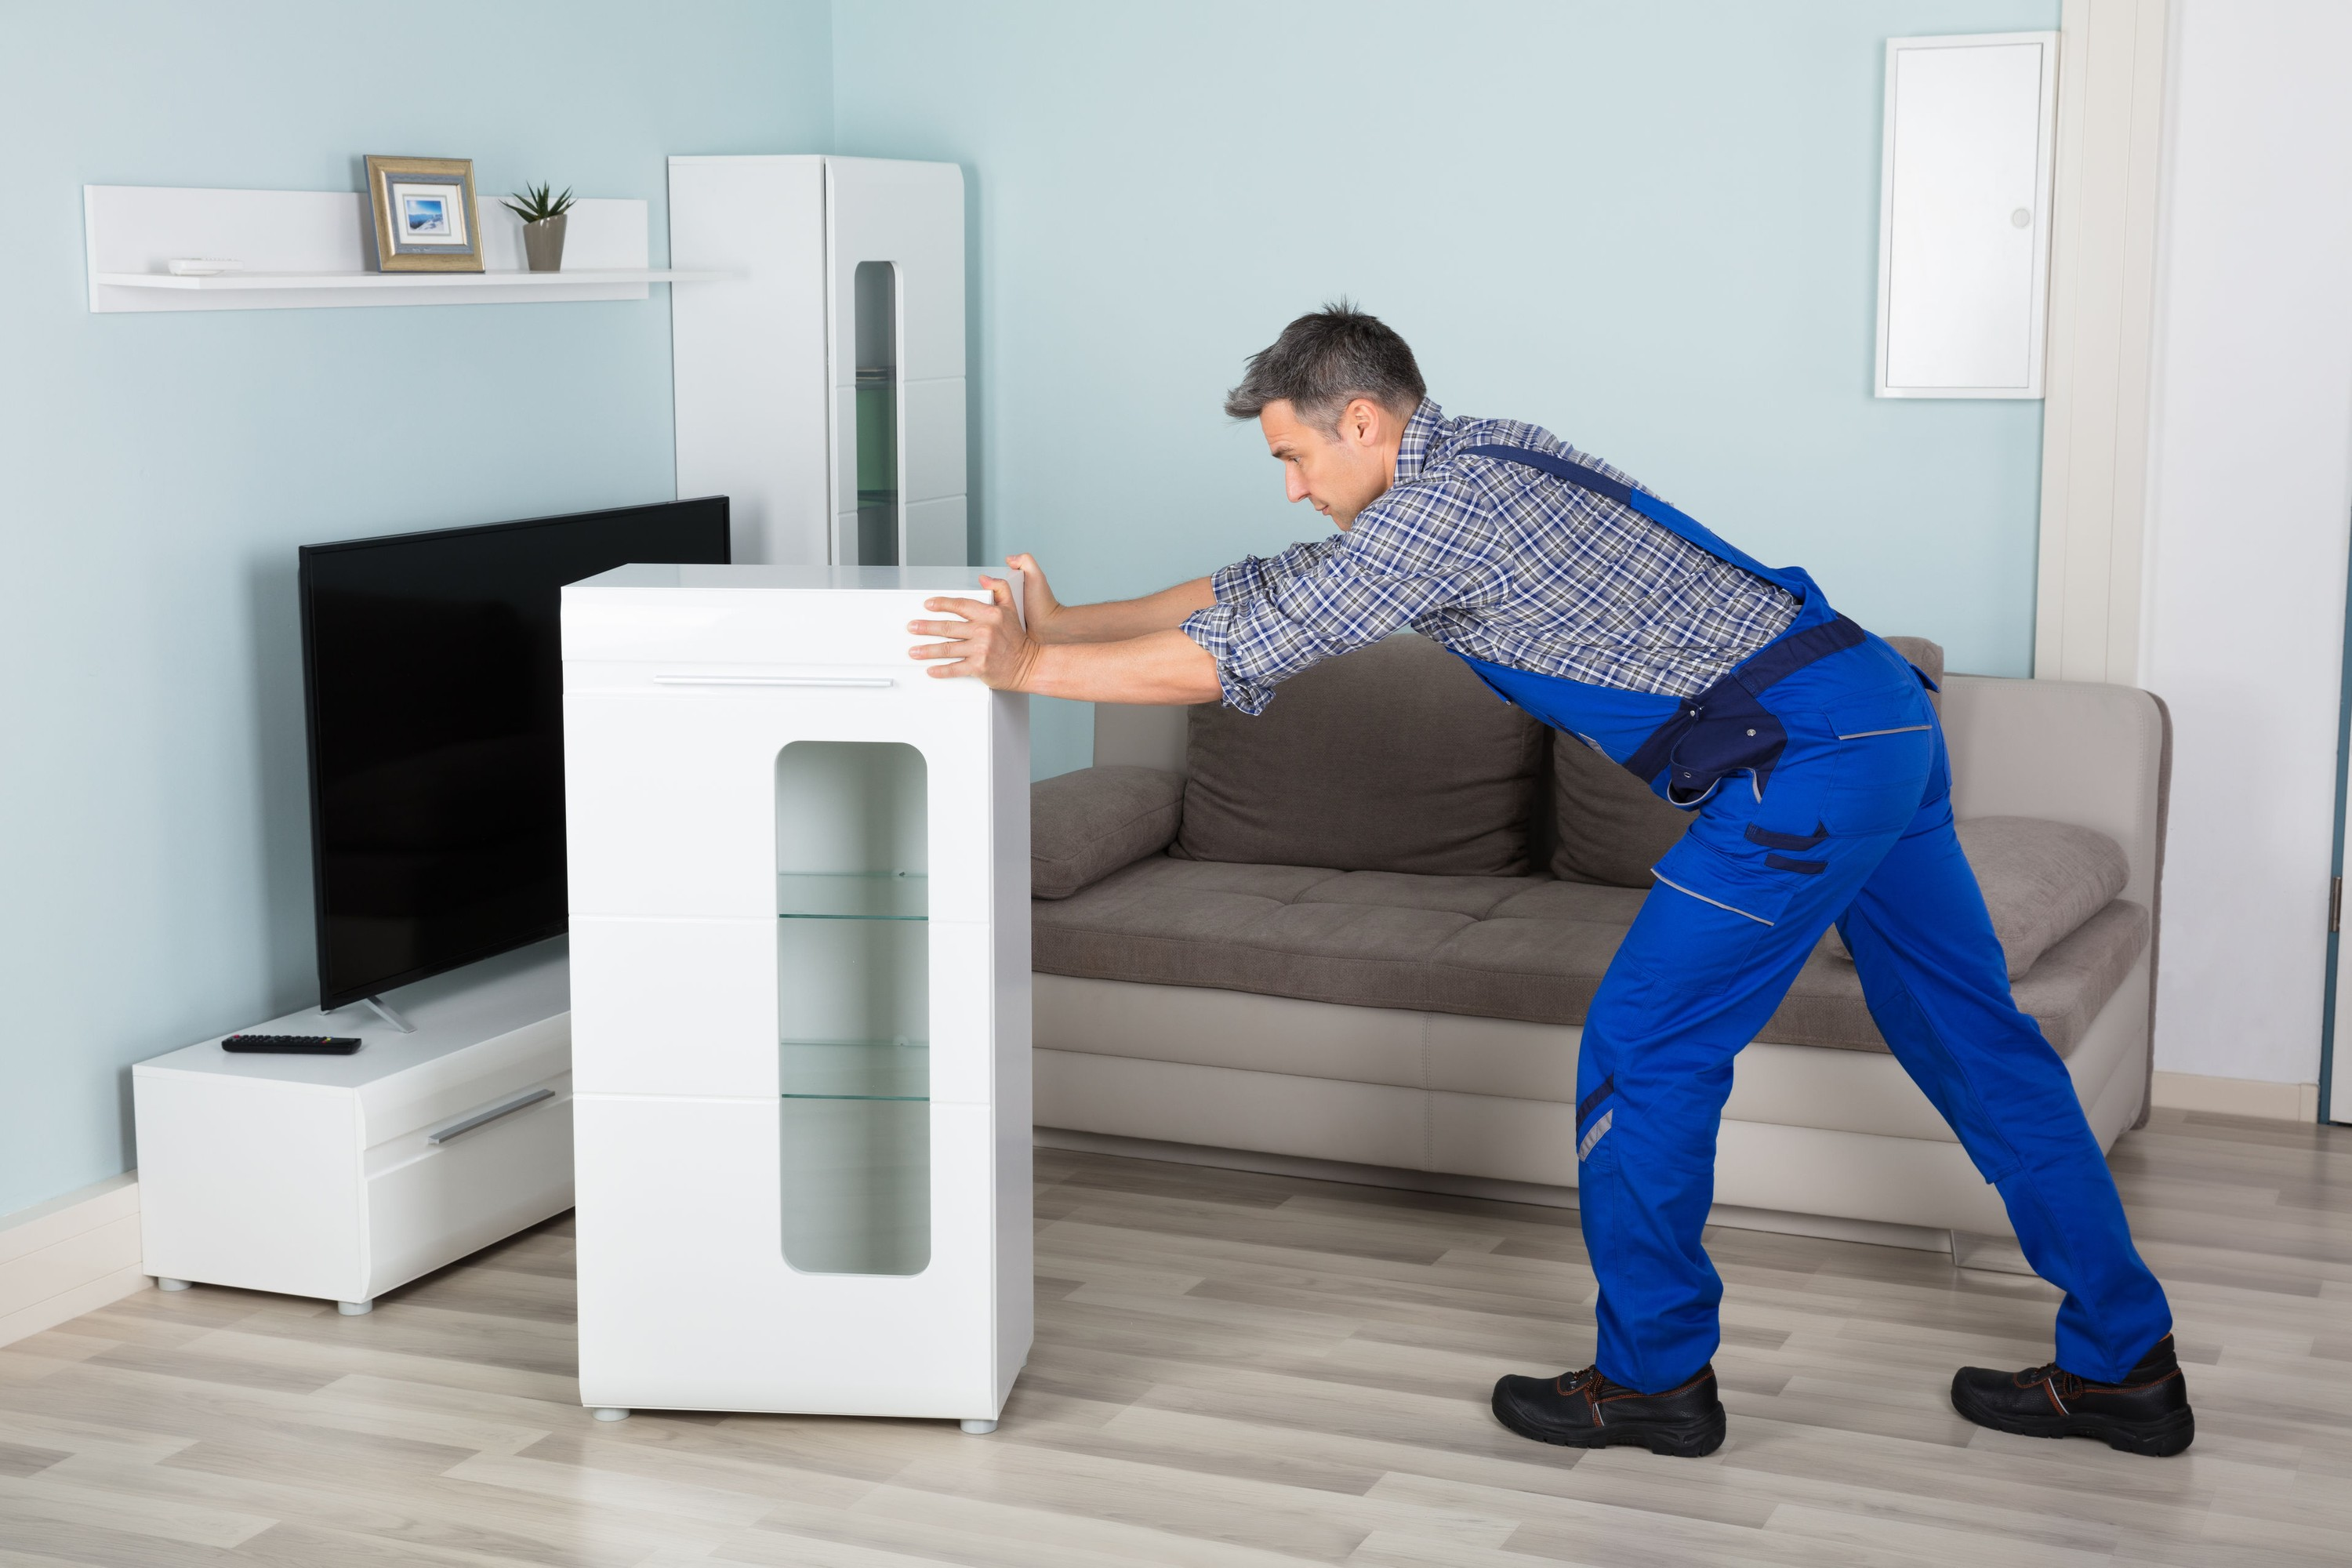 72006551 - mature male mover placing furniture in living room at home